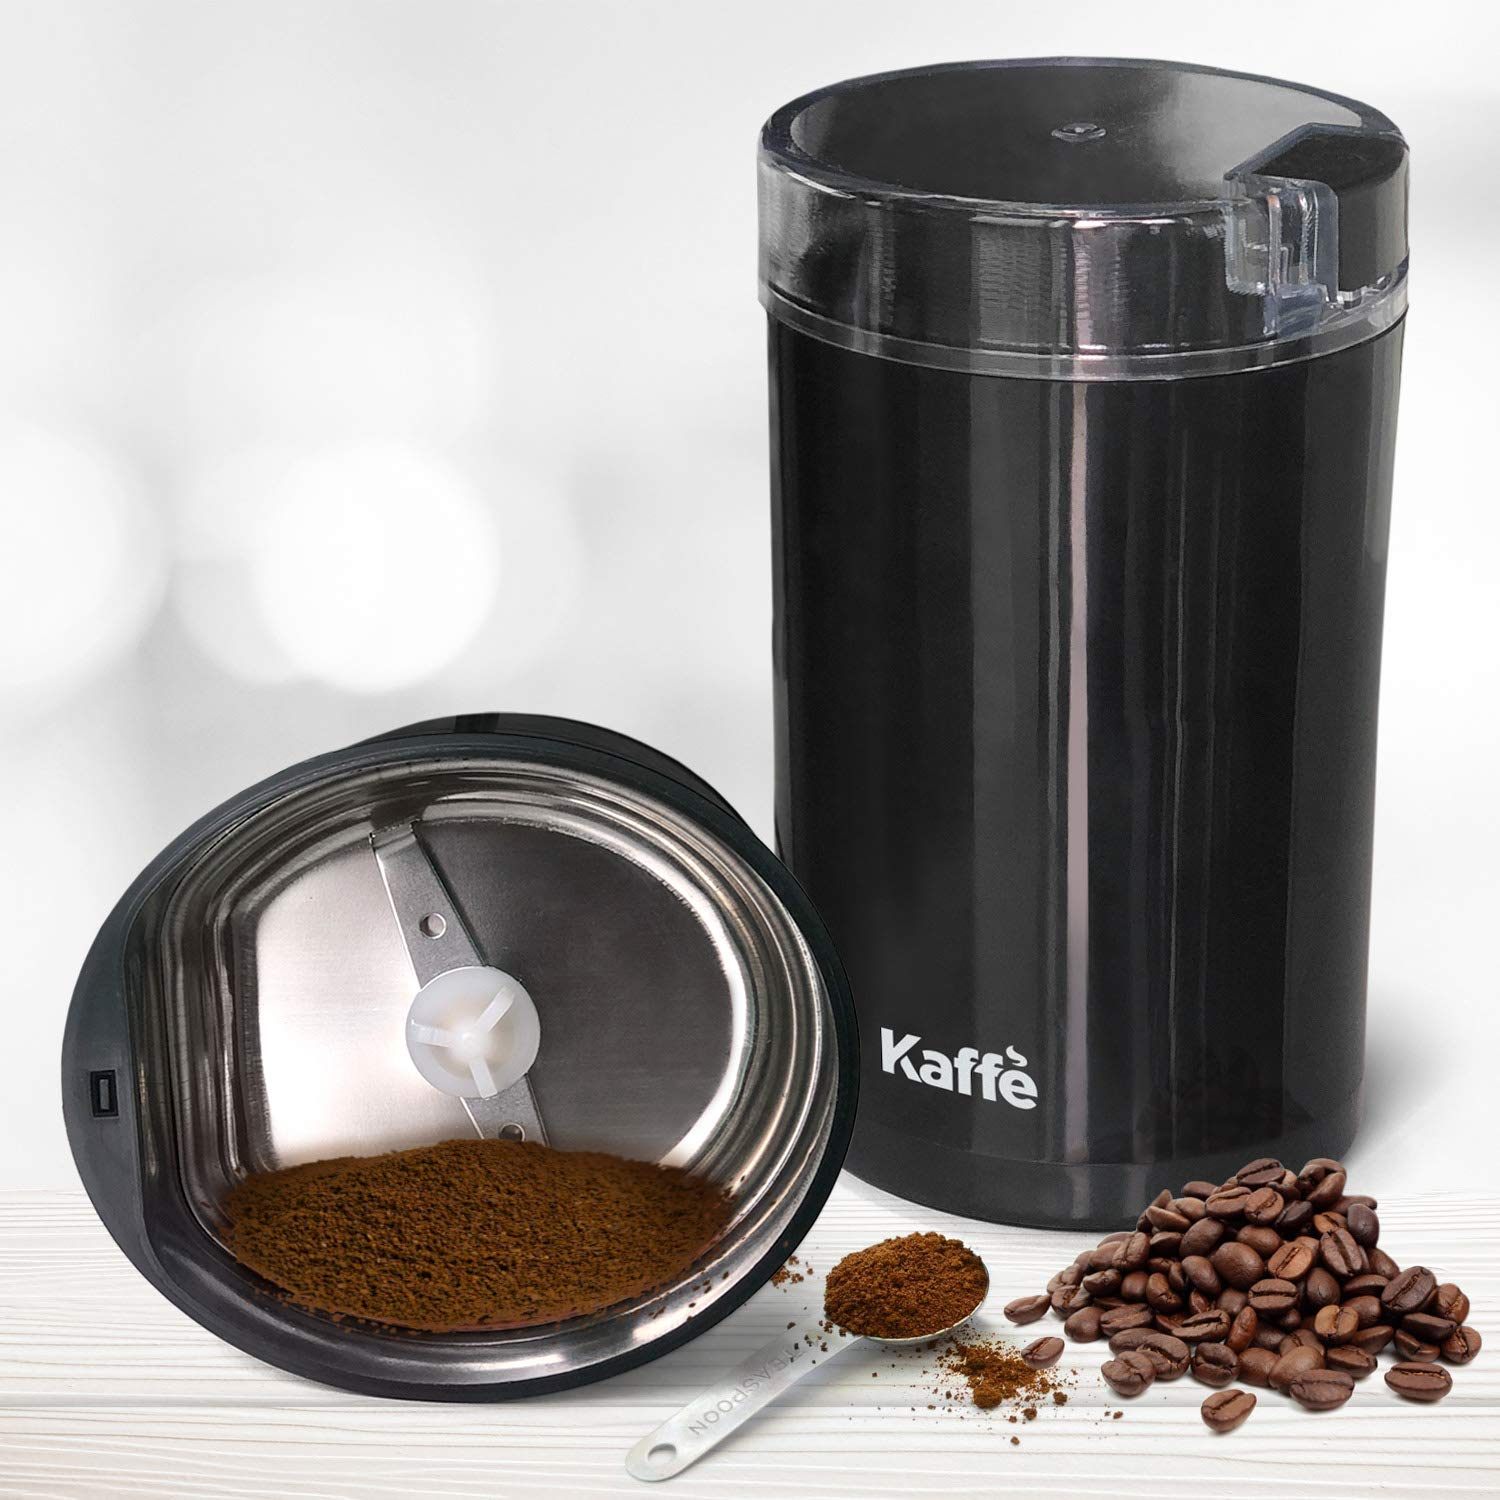 Stainless Steel 2.5oz Capacity with Easy On//Off Button KF2020 Electric Coffee Grinder by Kaffe Cleaning Brush Included! Black